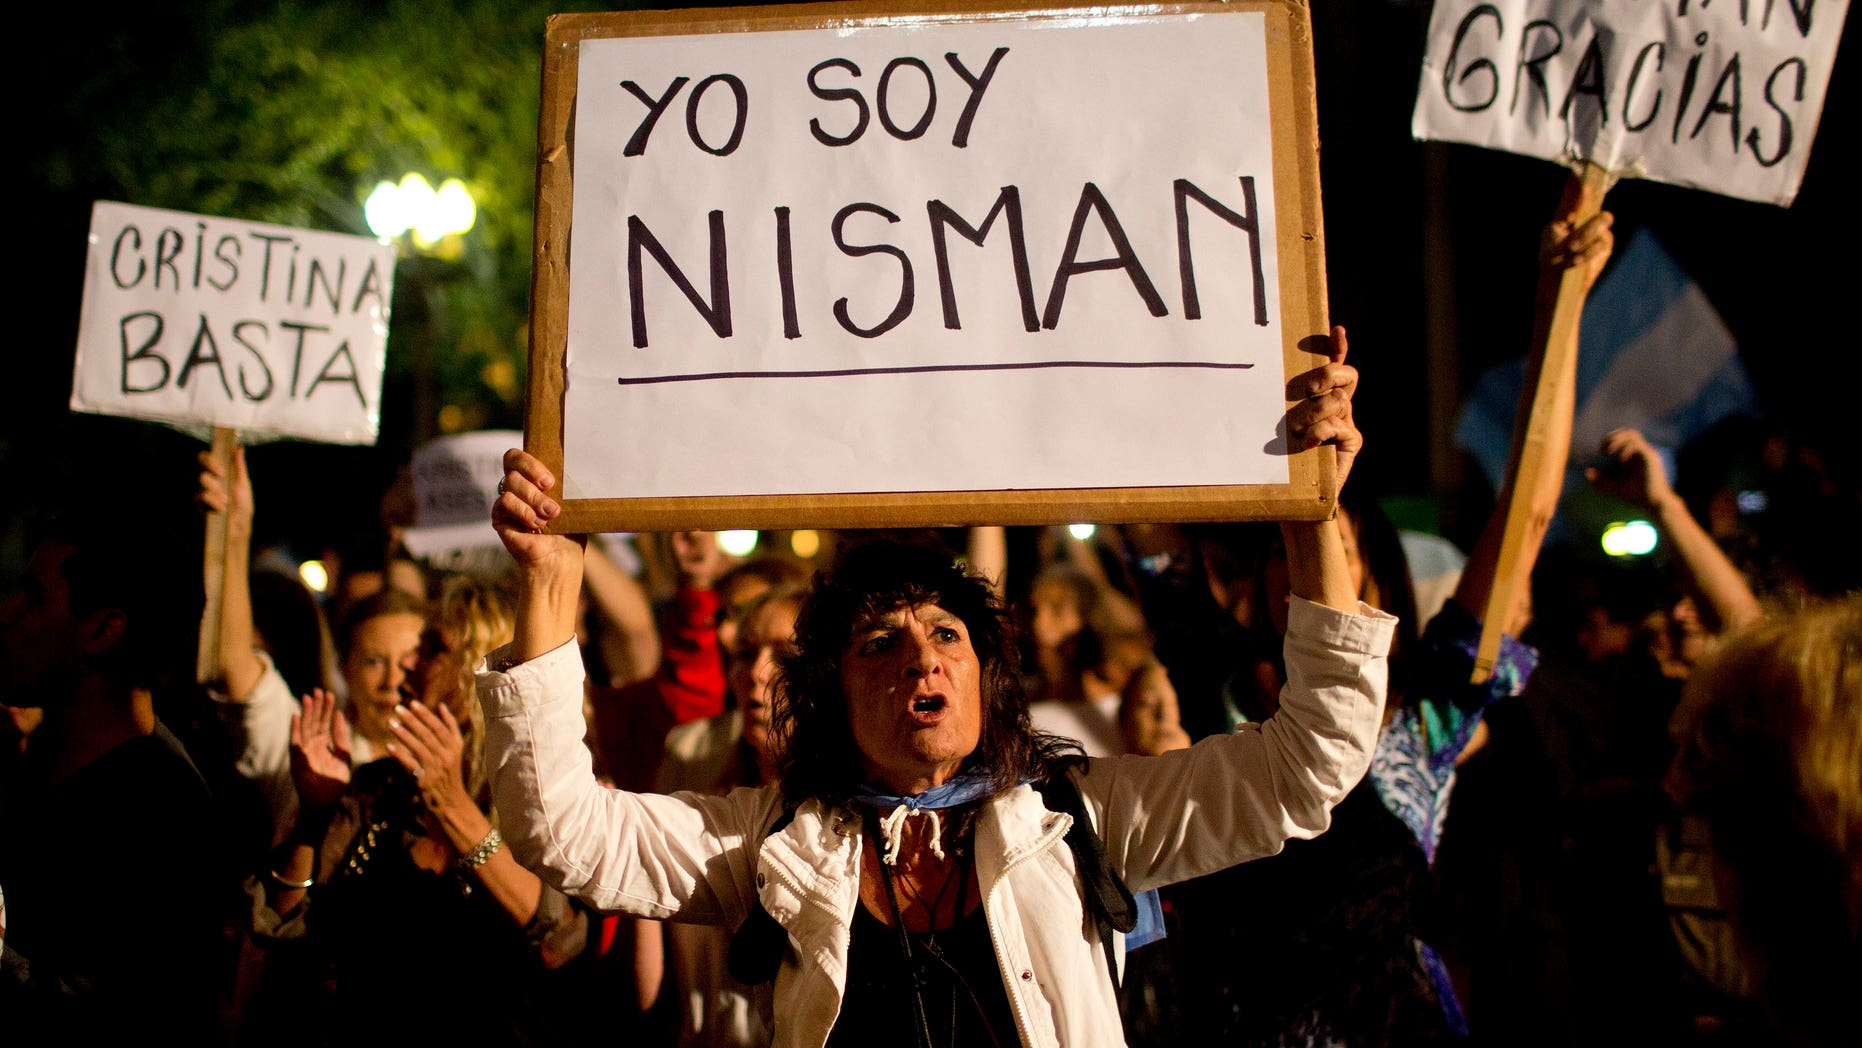 """A demonstrator holds a sign that reads in Spanish """"I am Nisman"""" during a protest sparked by the death of special prosecutor Alberto Nisman, outside the government house in Plaza de Mayo in Buenos Aires, Argentina, Monday, Jan. 19, 2015. The other signs read """"Enough Cristina,"""" left, and """"Thank you Nisman."""" Nisman, who had been investigating the 1994 bombing of the AMIA Jewish community center in Buenos Aires that killed 85 people and who accused President Cristina Fernandez of shielding Iranian suspects, was found dead with a gunshot to his head in the bathroom of his apartment late Sunday, hours before he was to testify in a Congressional hearing about the case. (AP Photo/Rodrigo Abd)"""